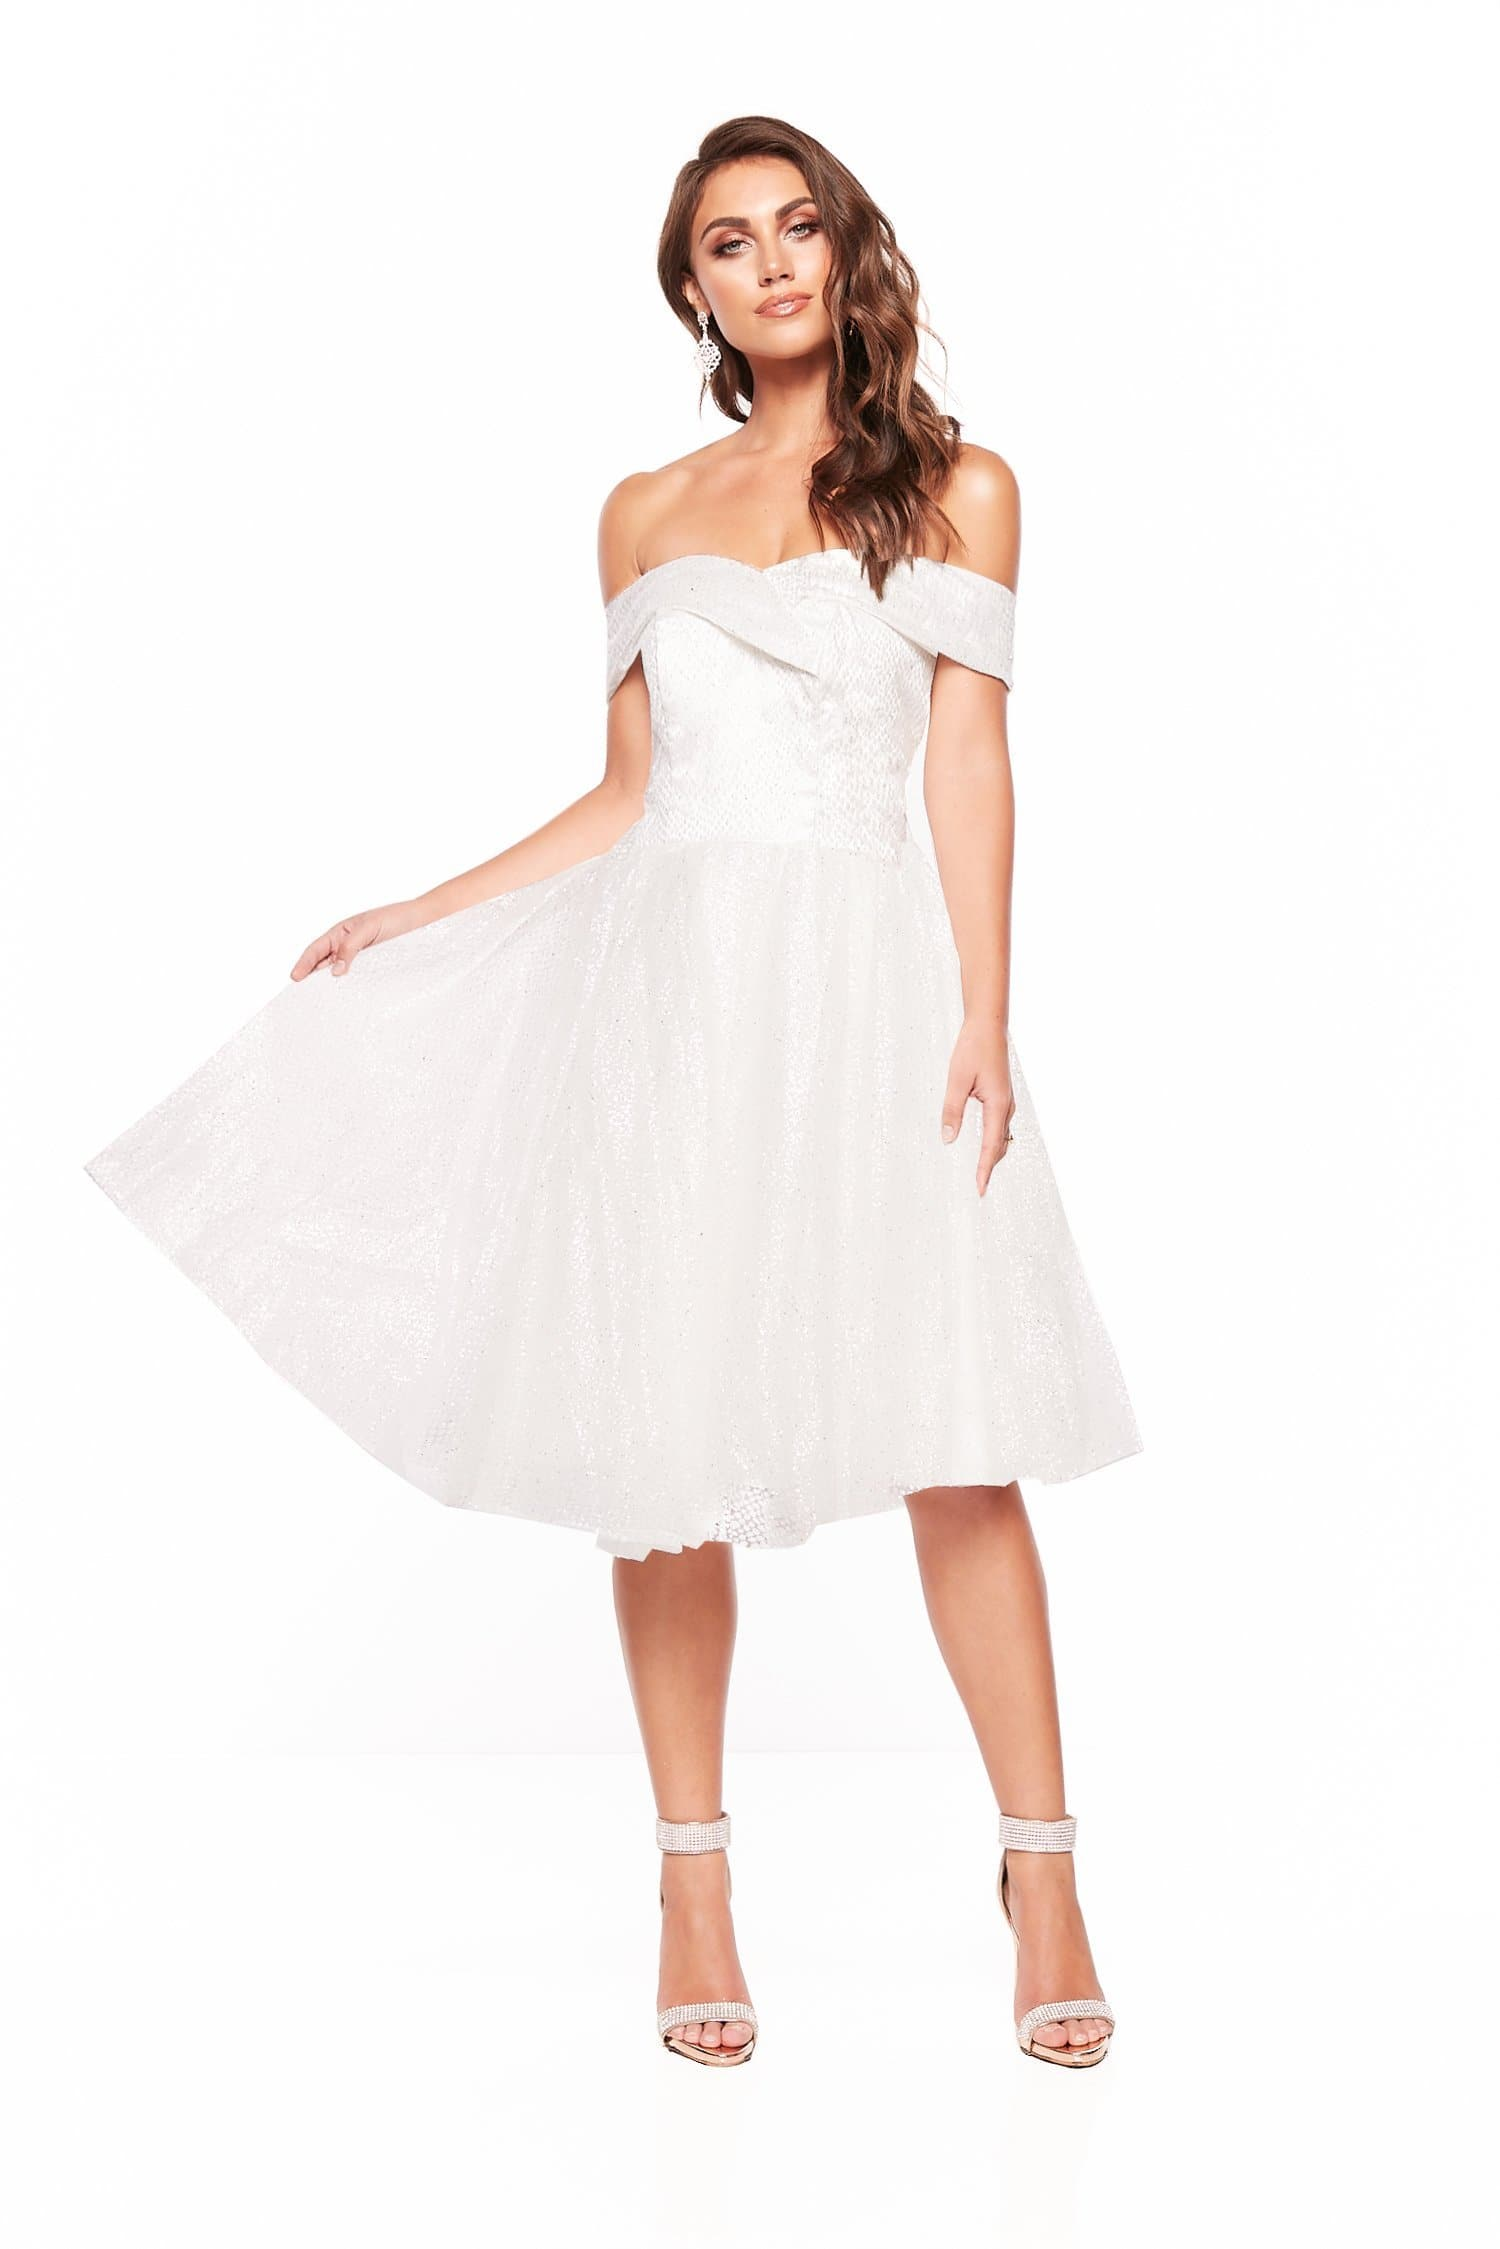 fc82286904f9 A N Nyla Glitter Cocktail Off Shoulder Midi Dress - White – A N Luxe ...